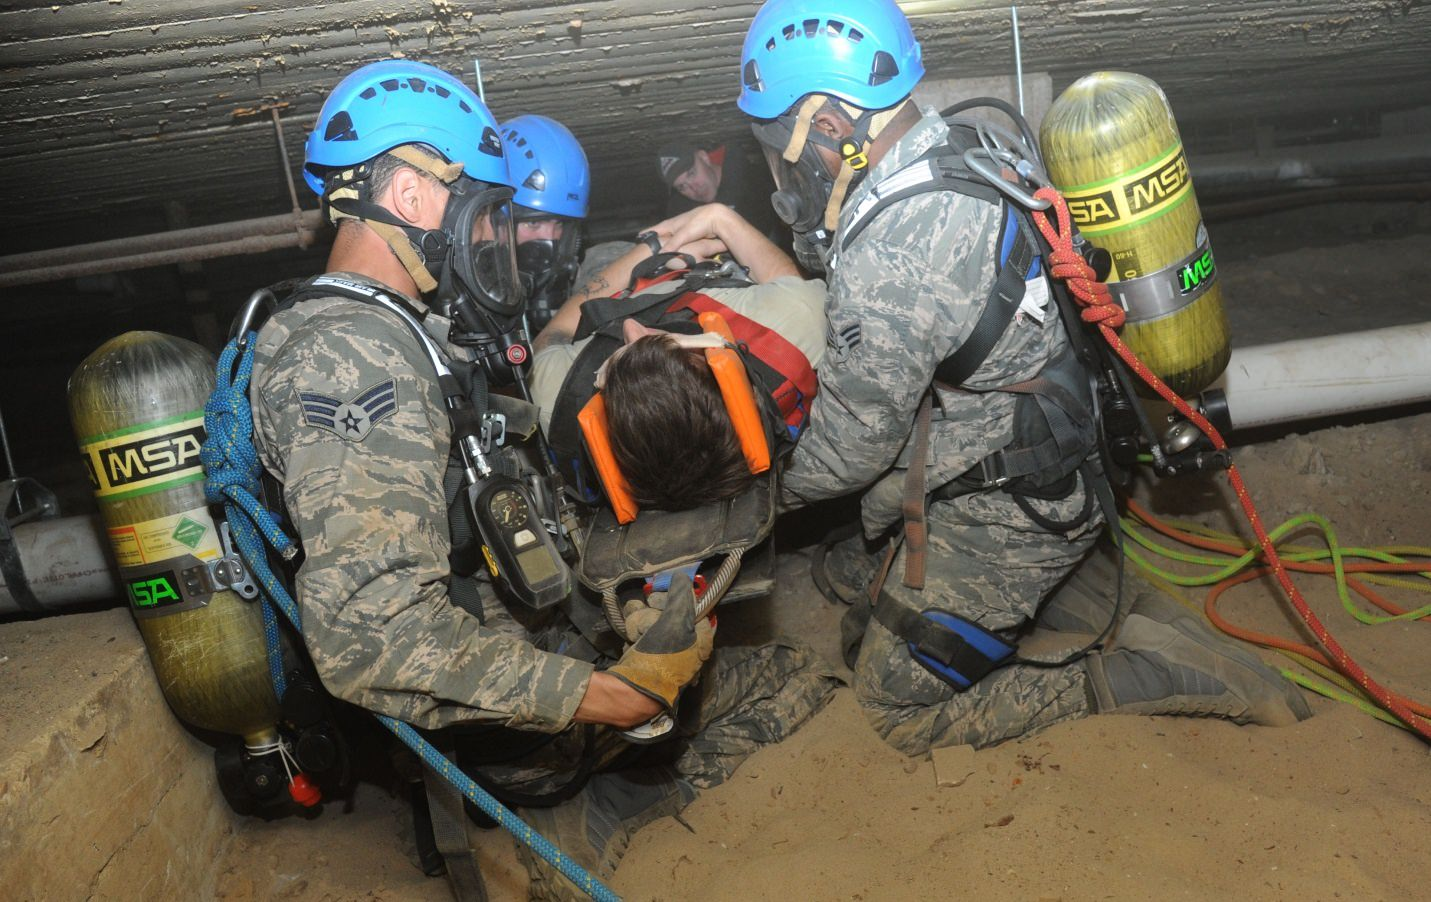 Rescue team pulling a person out of a confined space on a backboard